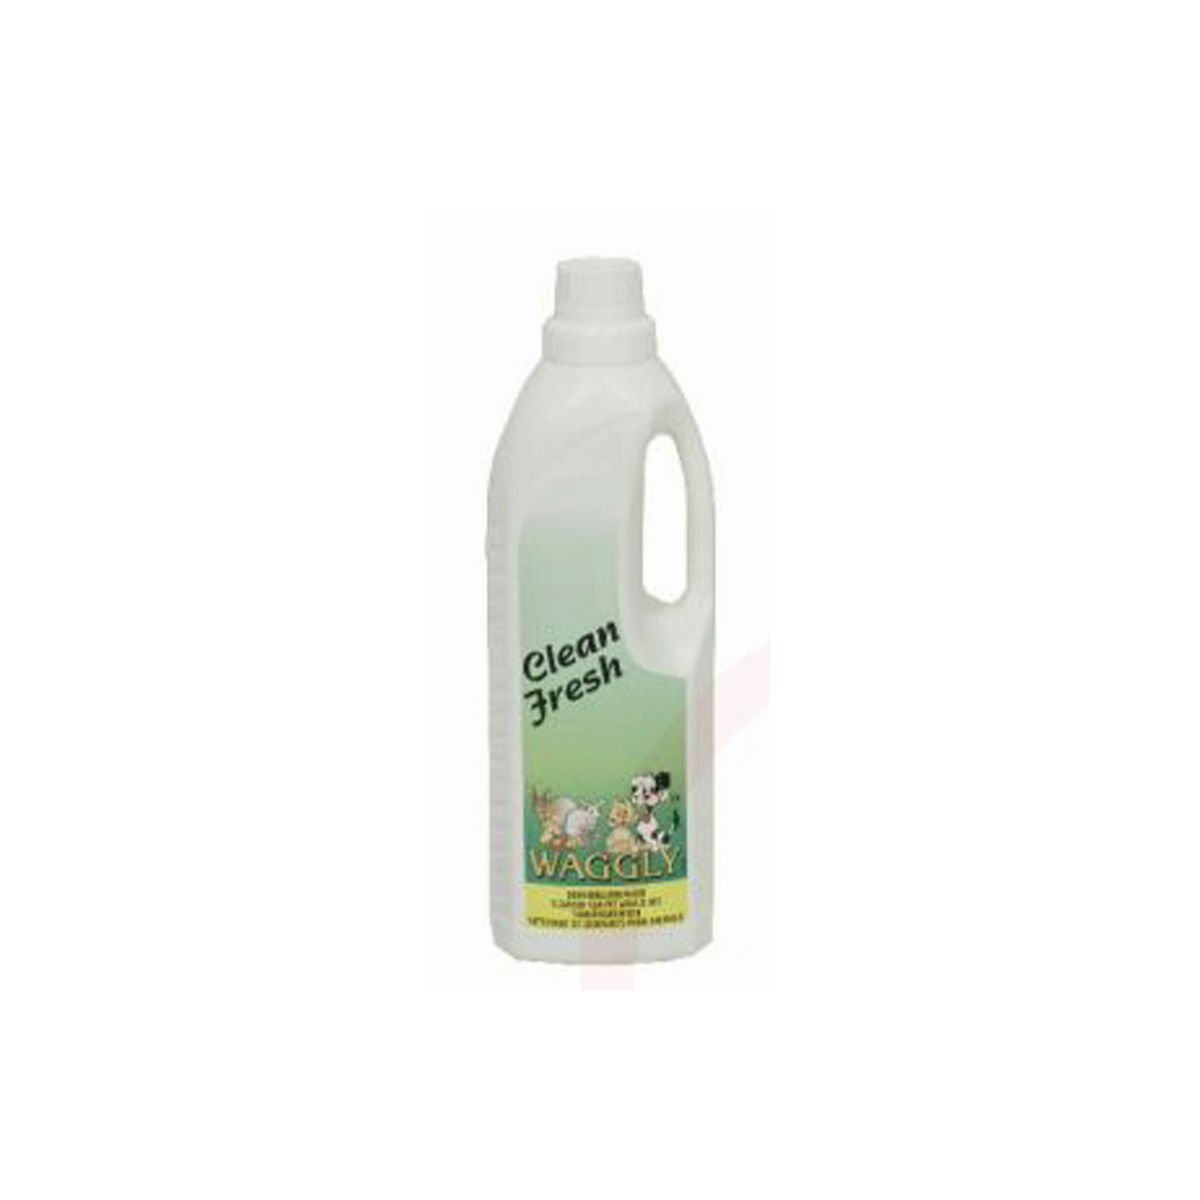 WAGGLY CLEAN FRESH 1LTR 00002